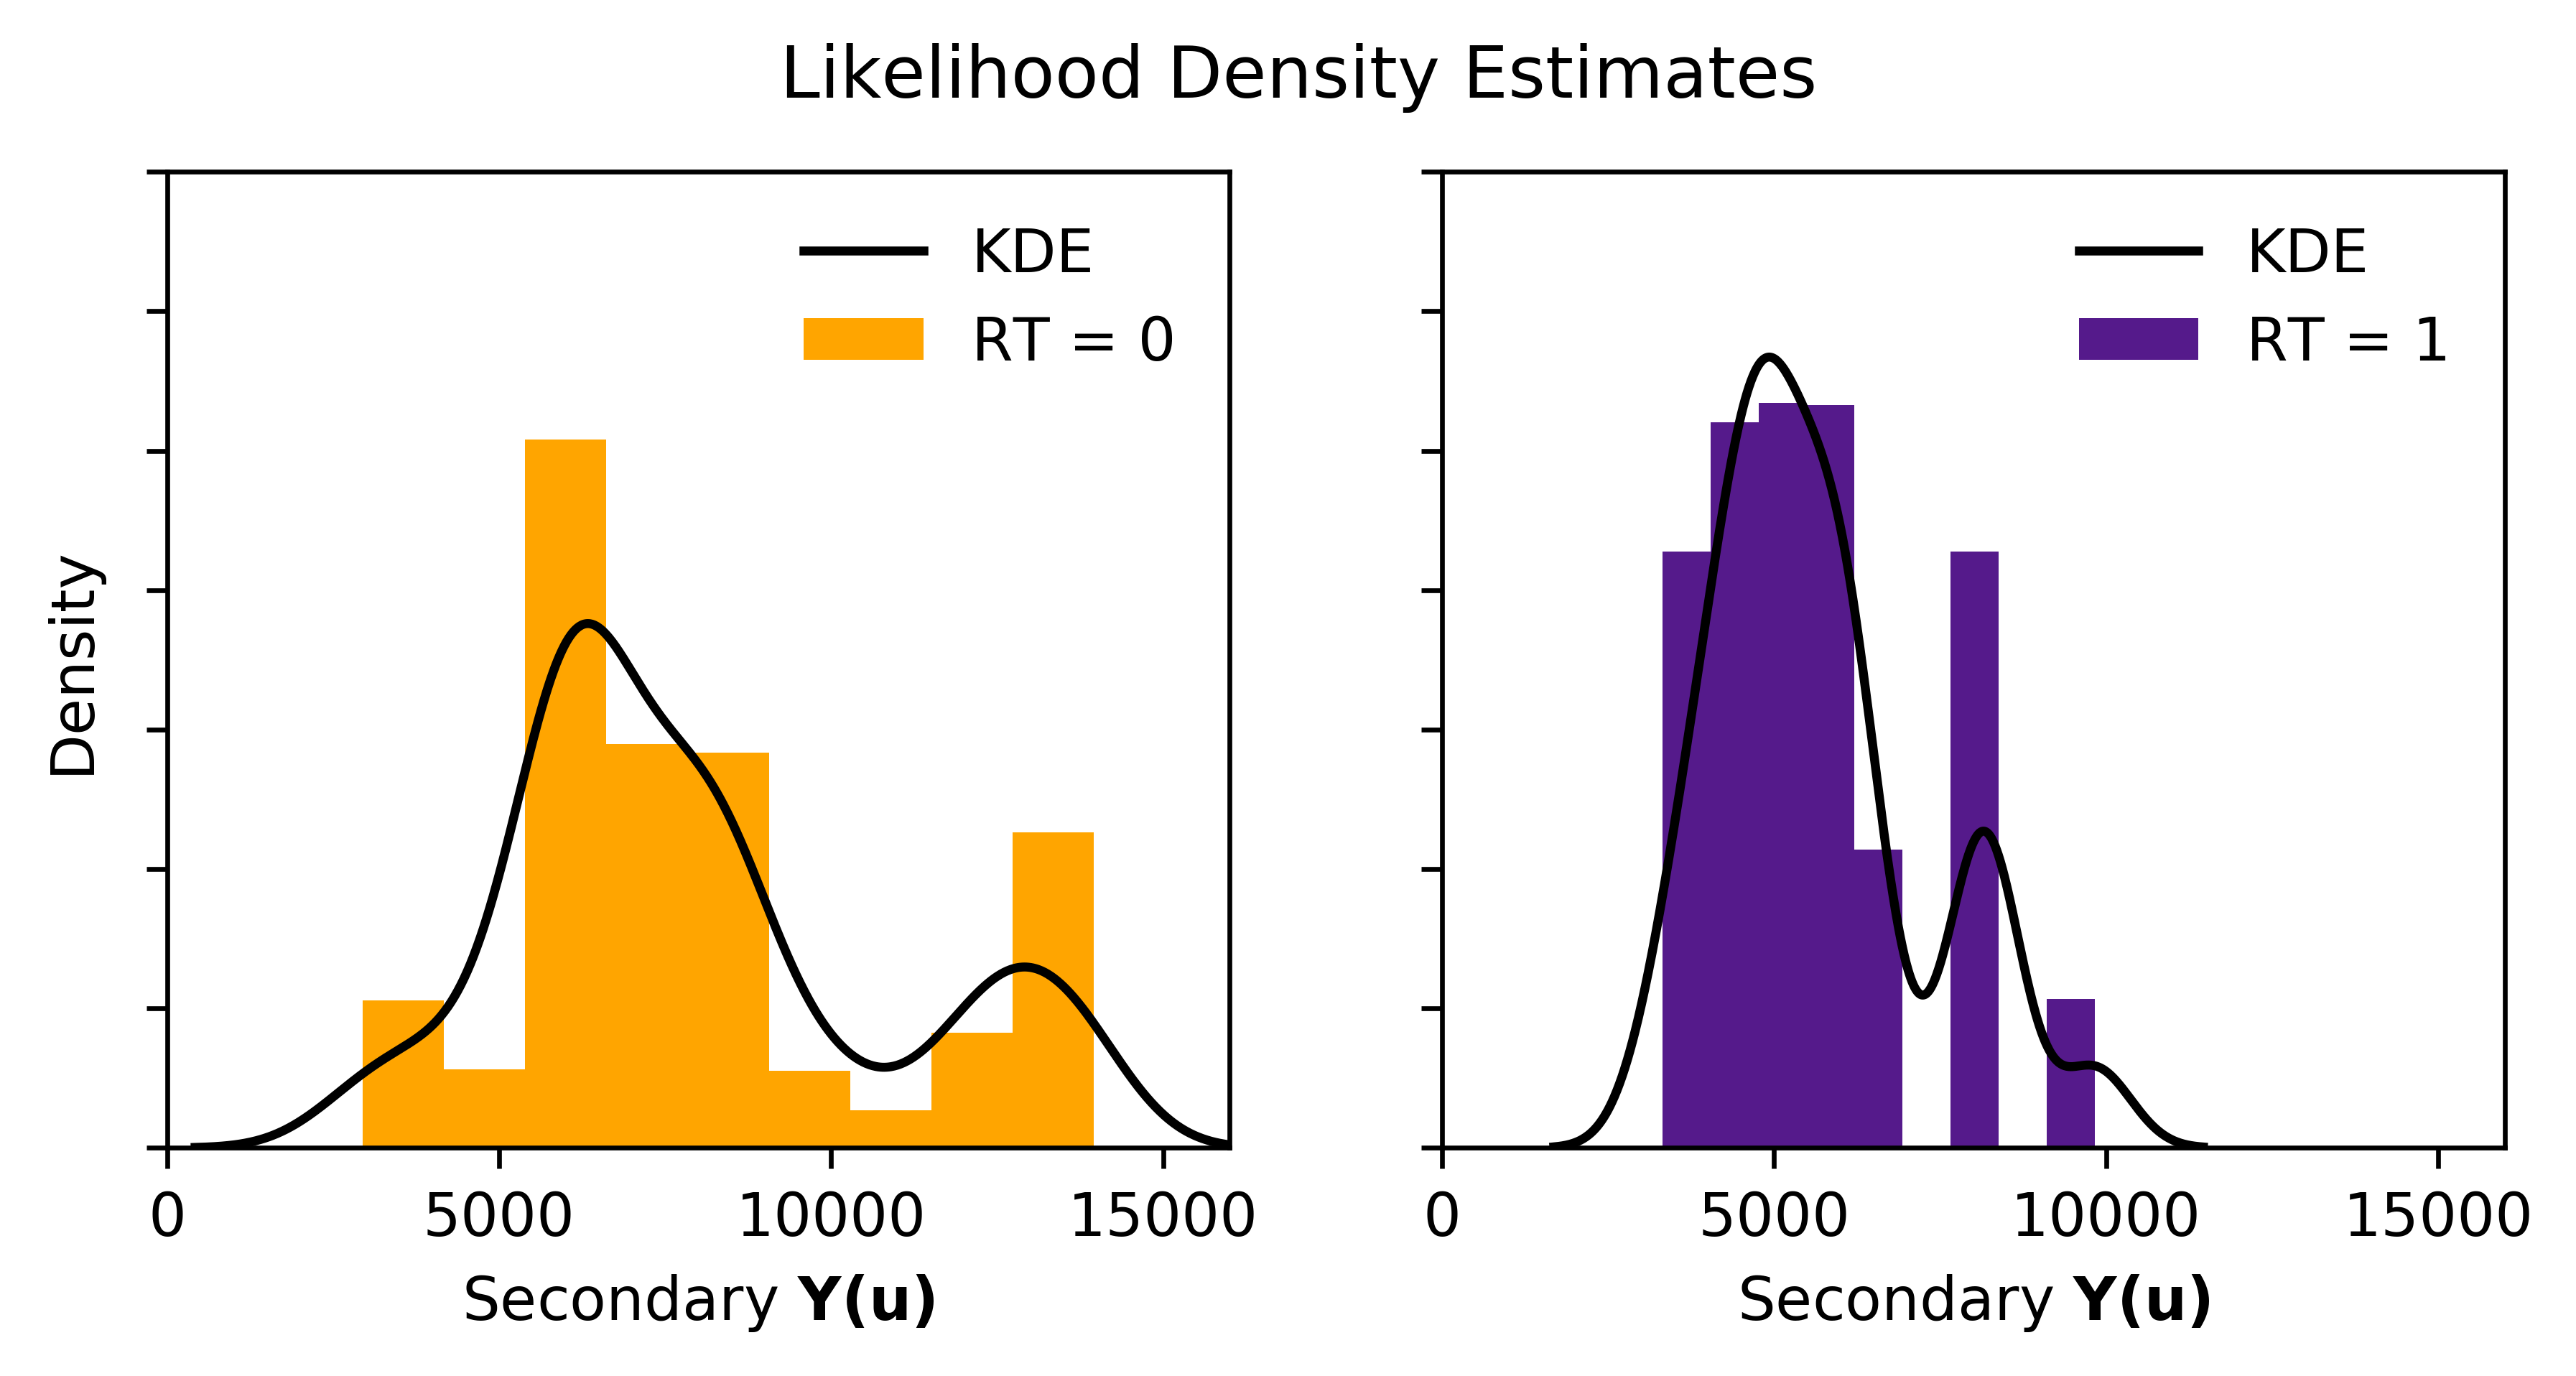 Kernel density estimates of the likelihood distributions of Y conditional to A and not-A.